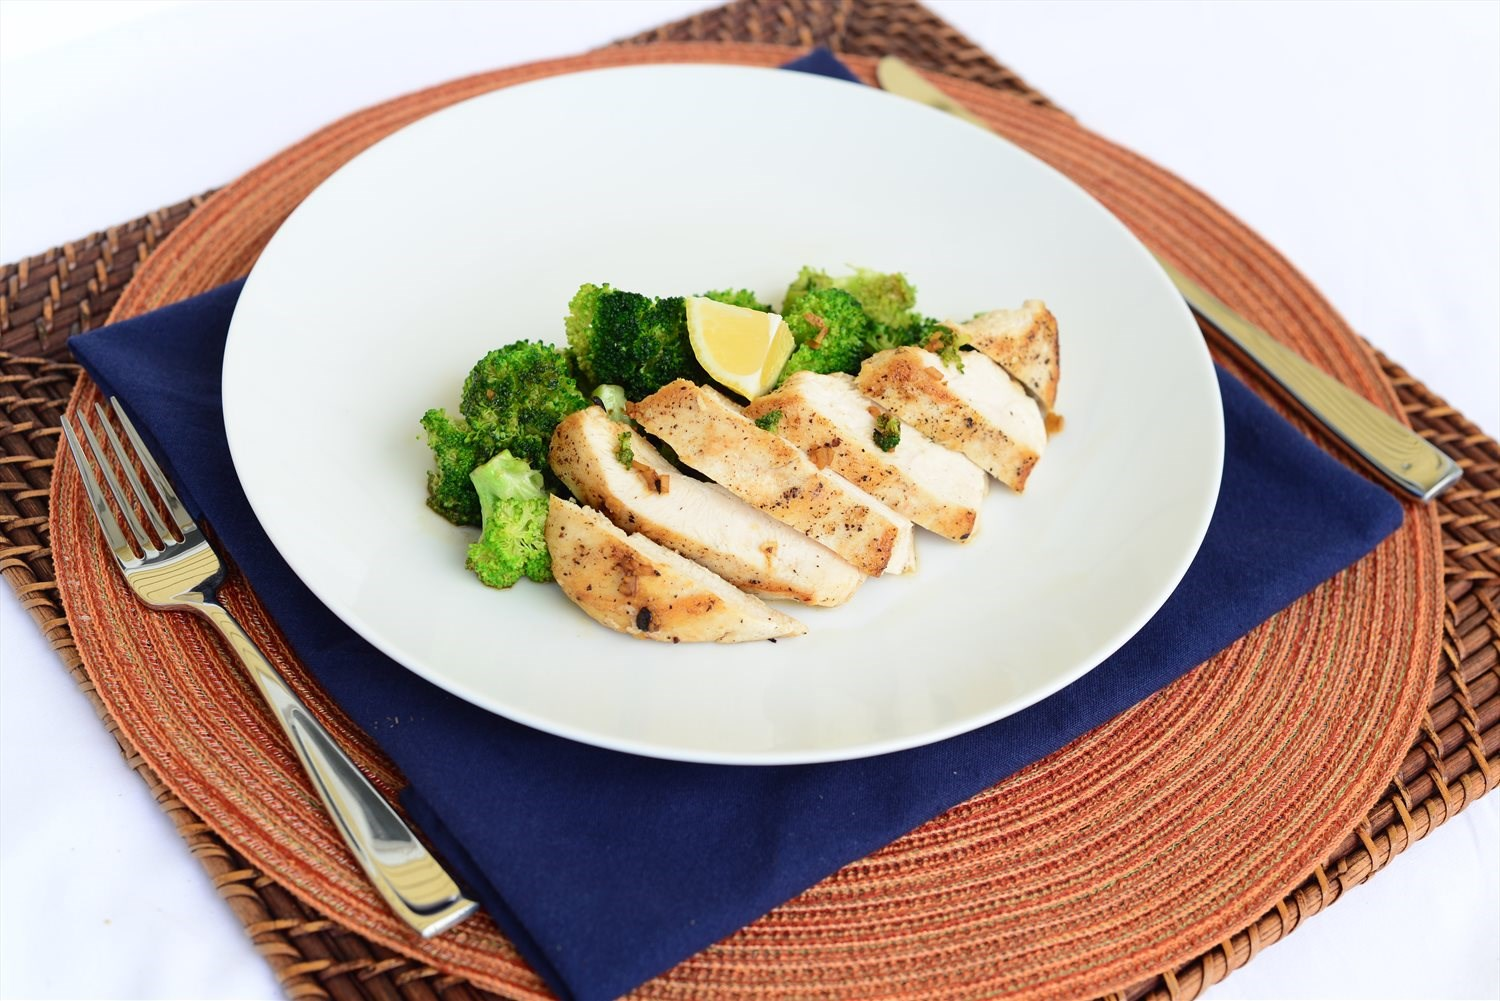 Lemon Chicken and Broccoli Skillet